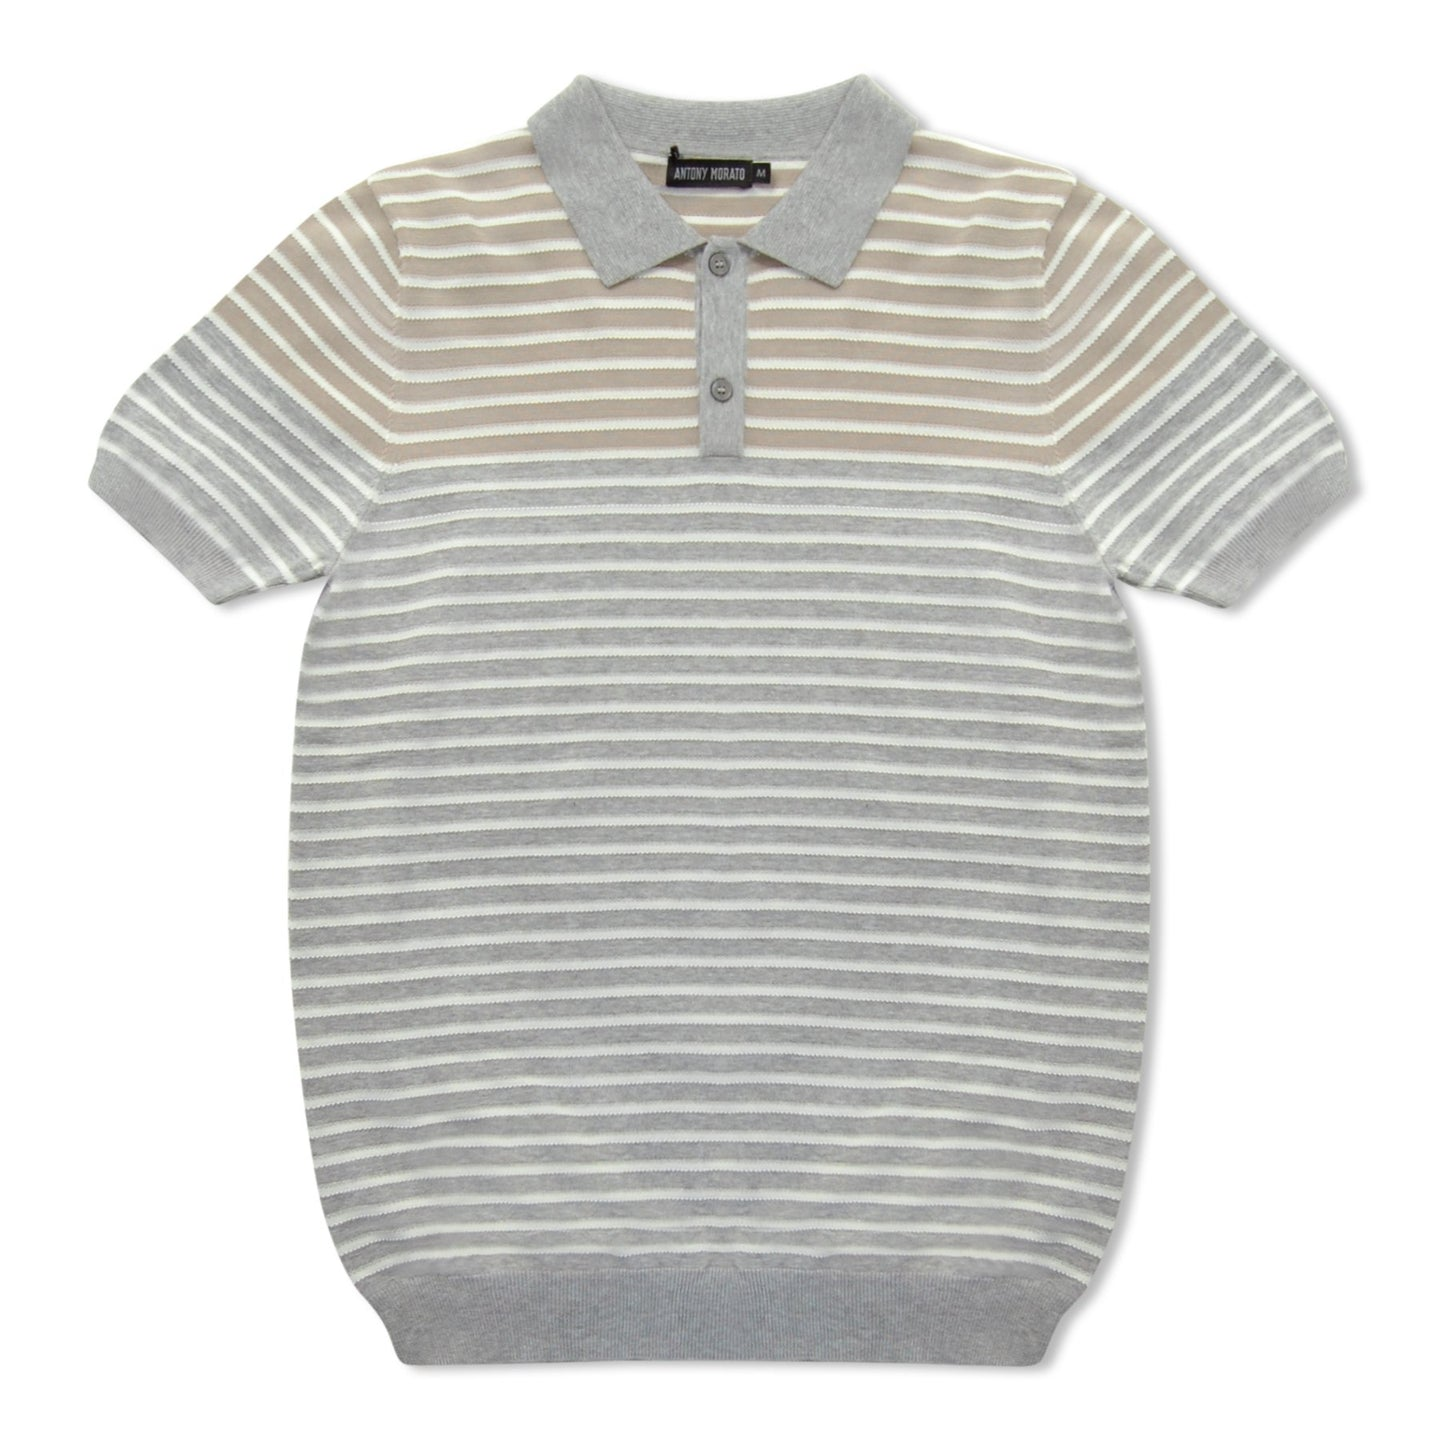 Grey And White Stripe Antony Morato Polo